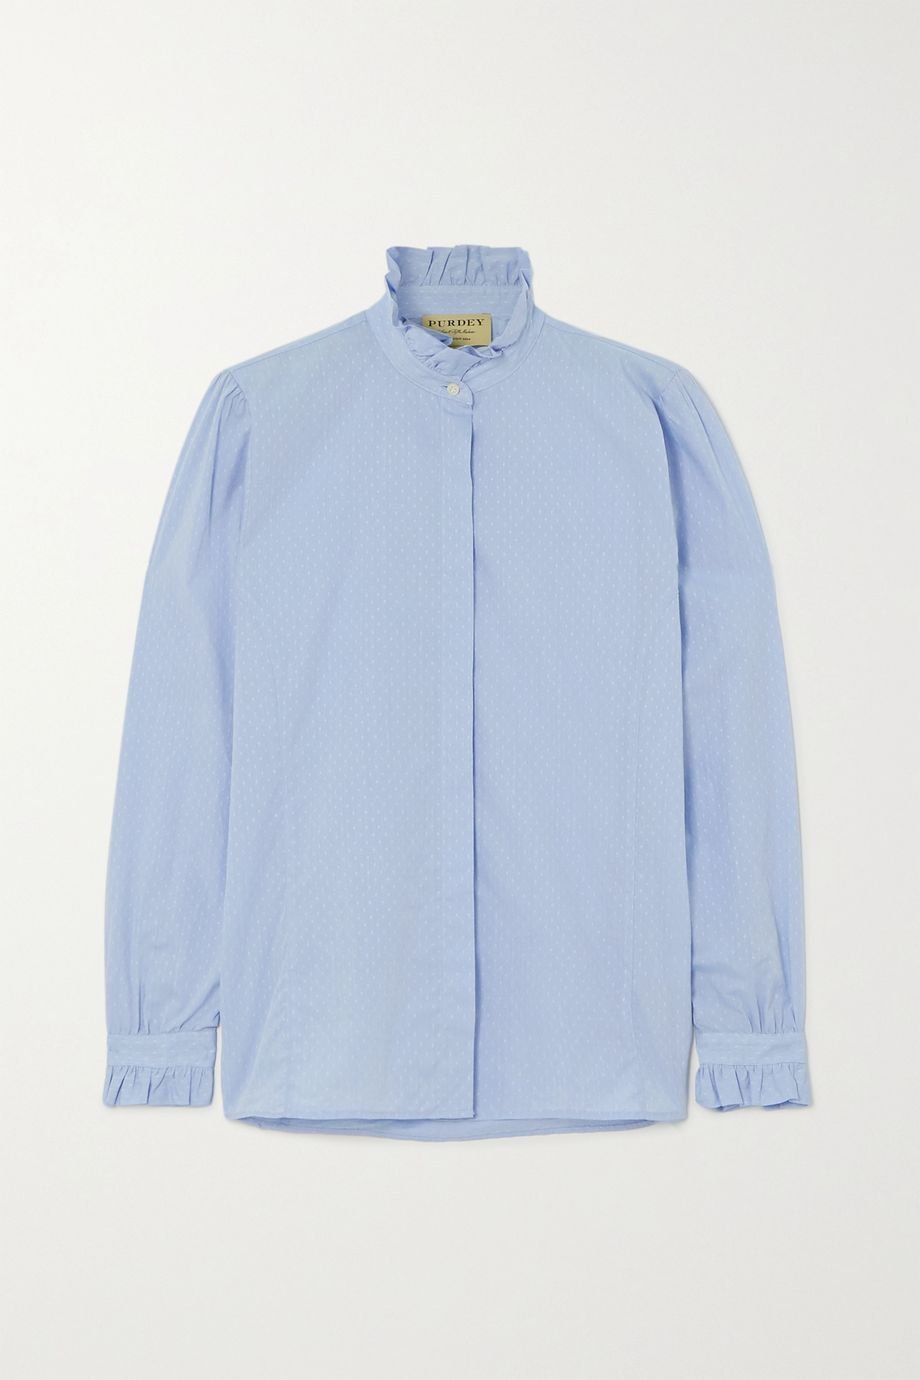 Purdey Pie Crust ruffled embroidered cotton-chambray shirt